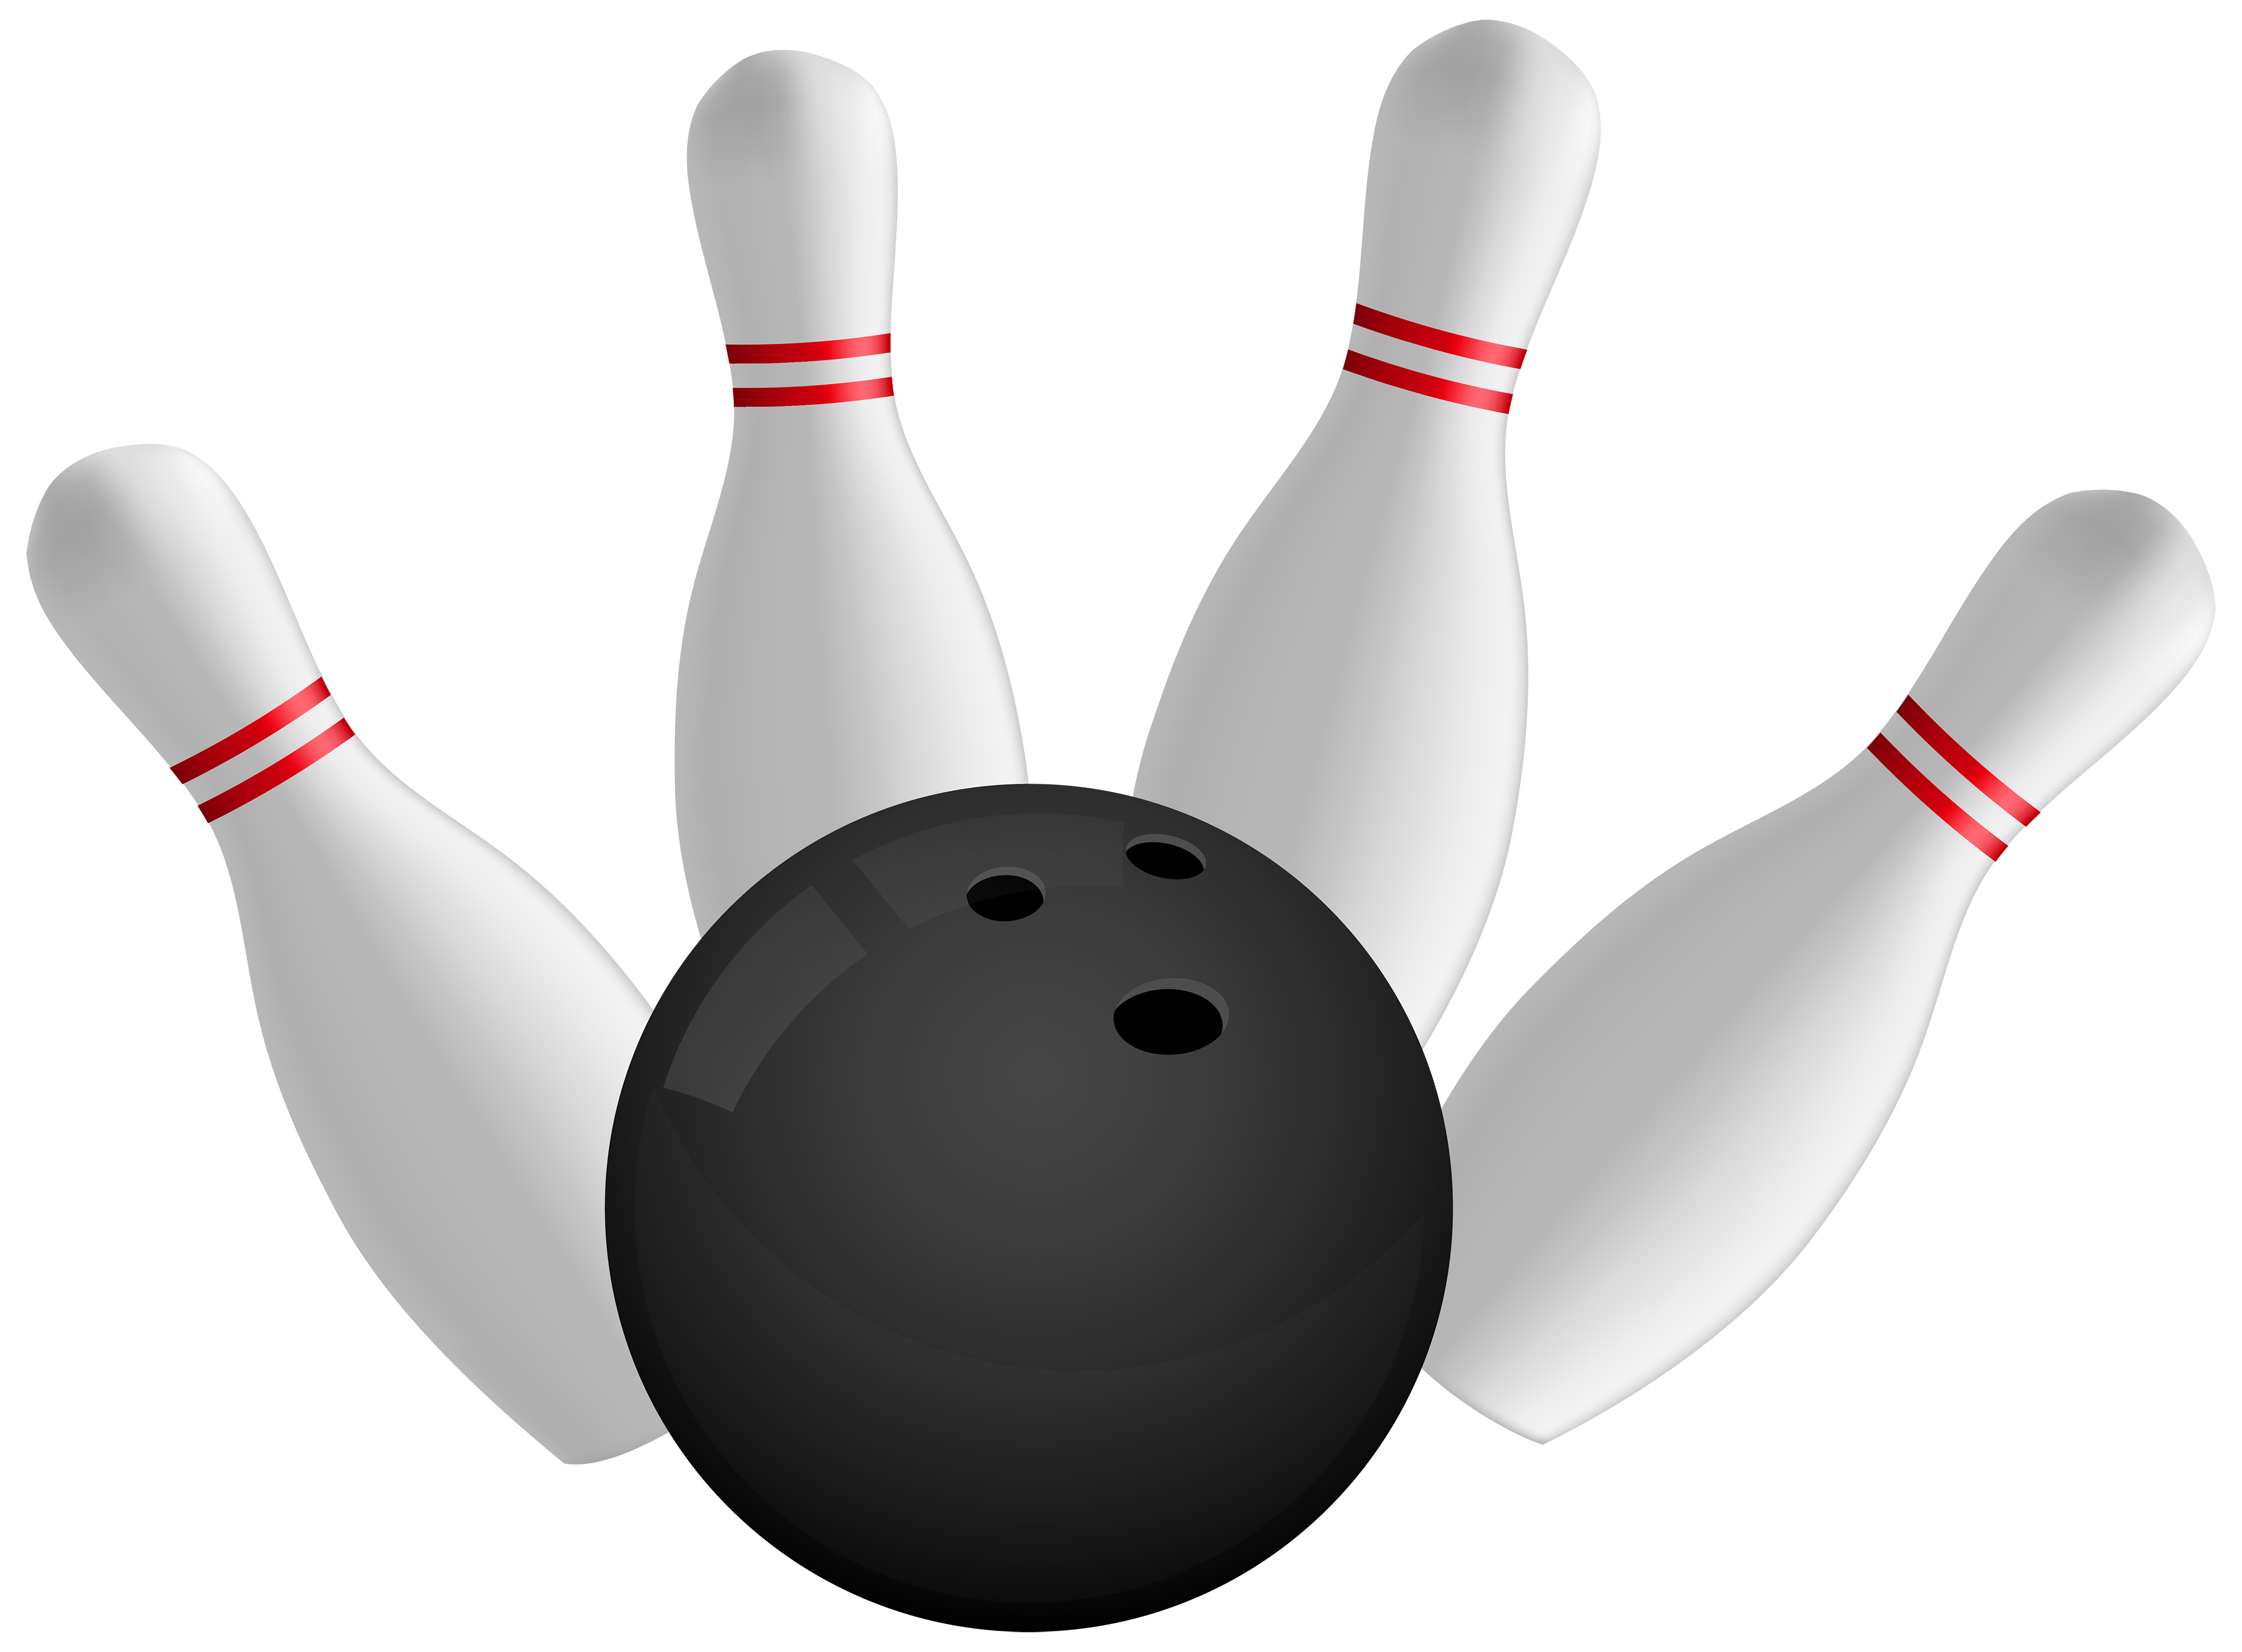 bowling images download #8994